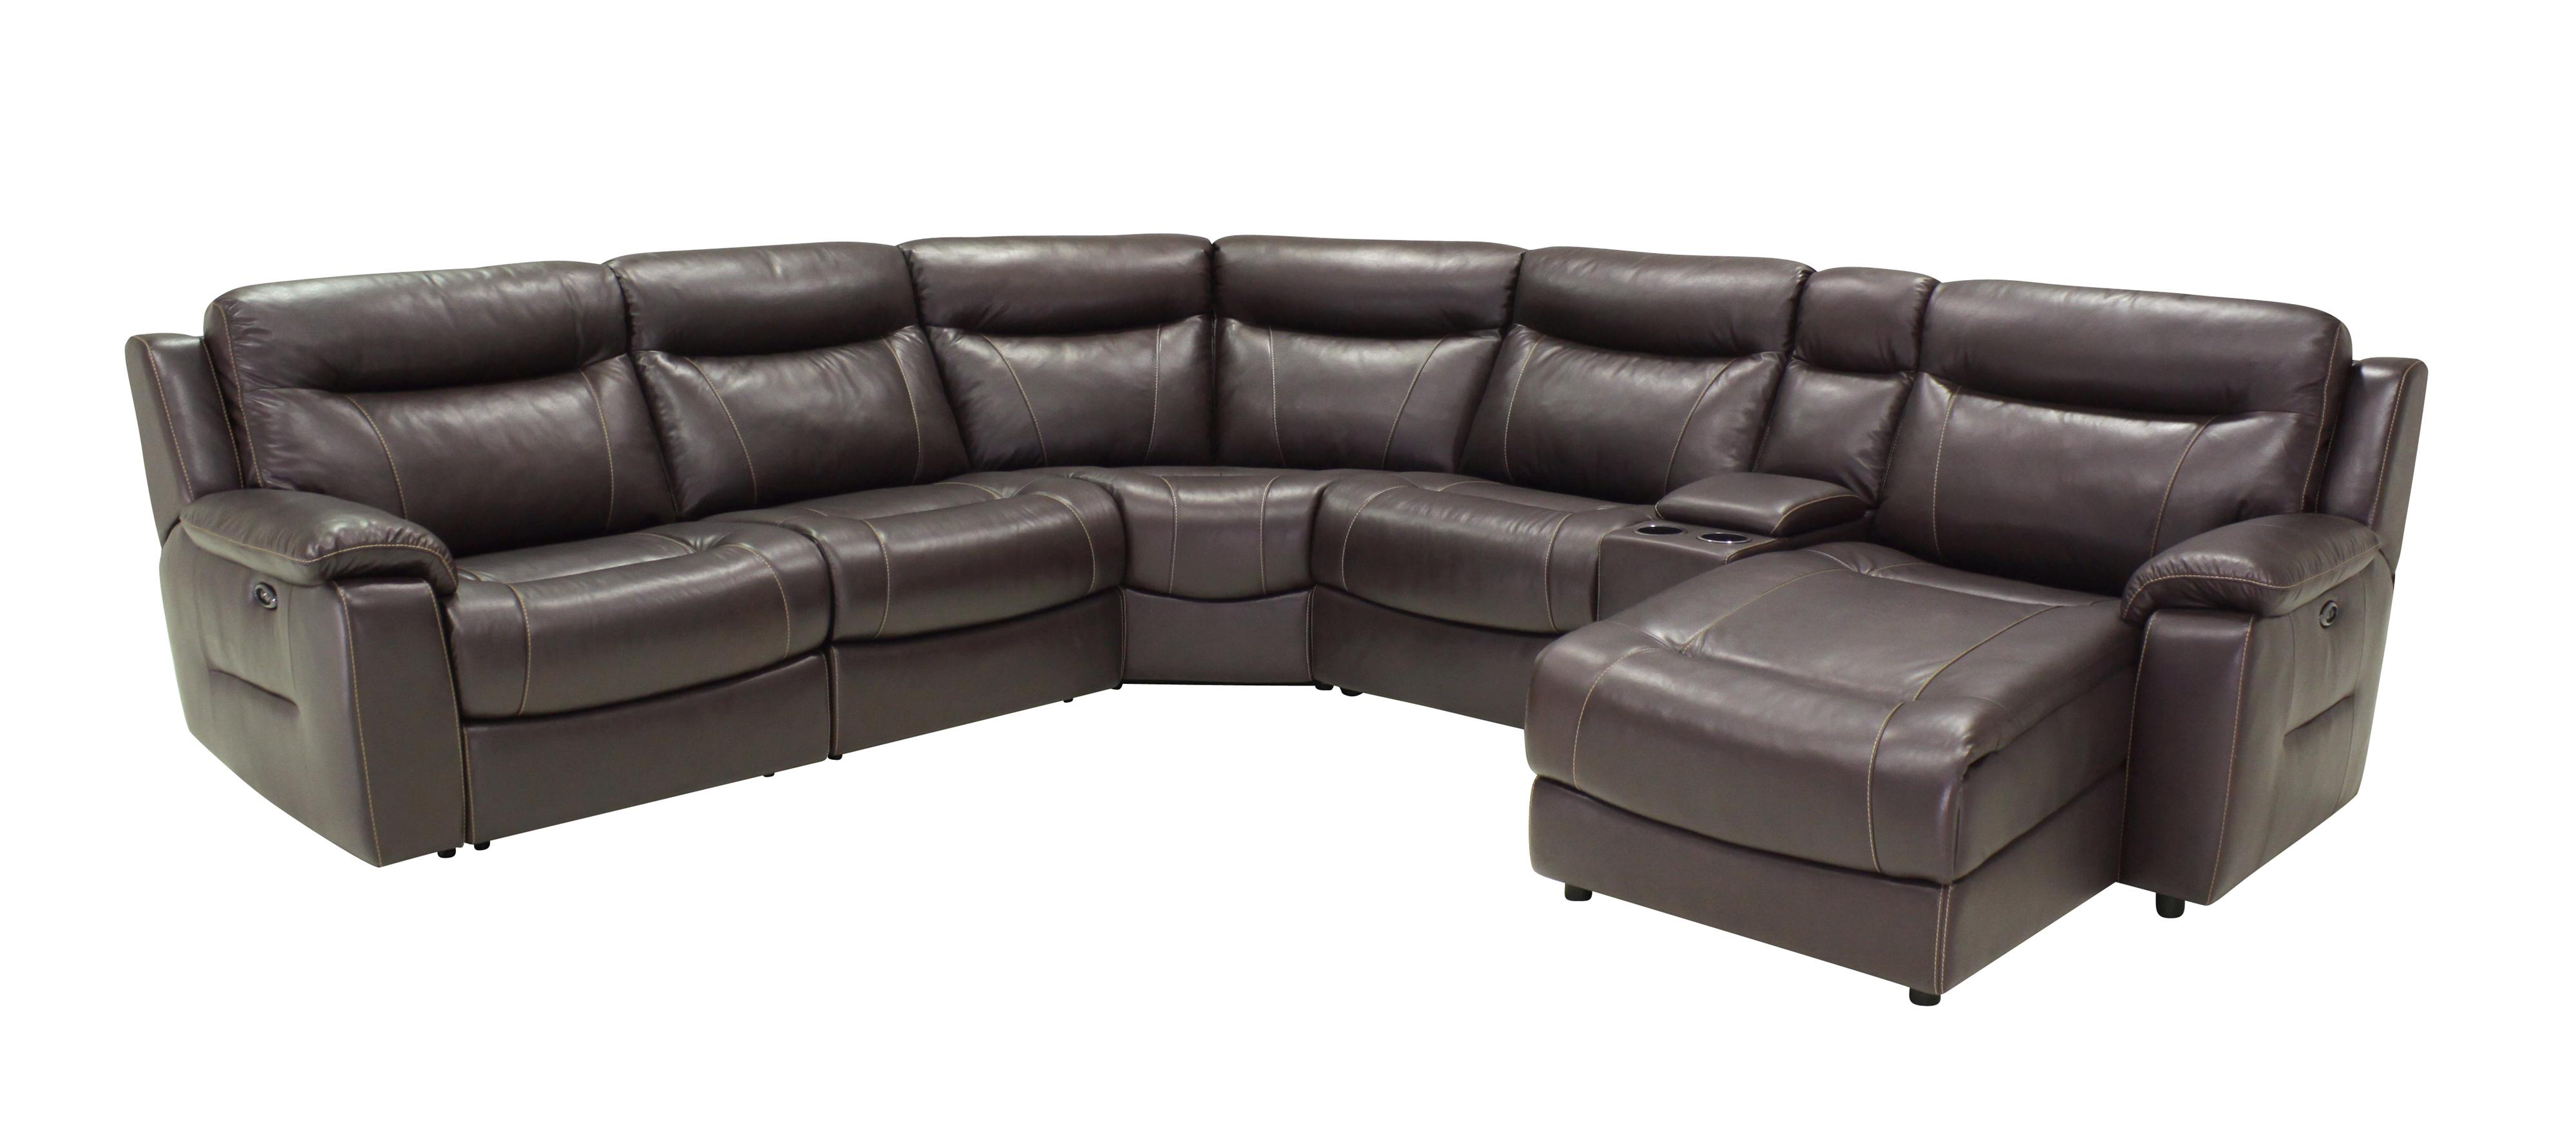 6 Pc Reclining Sectional Sofa